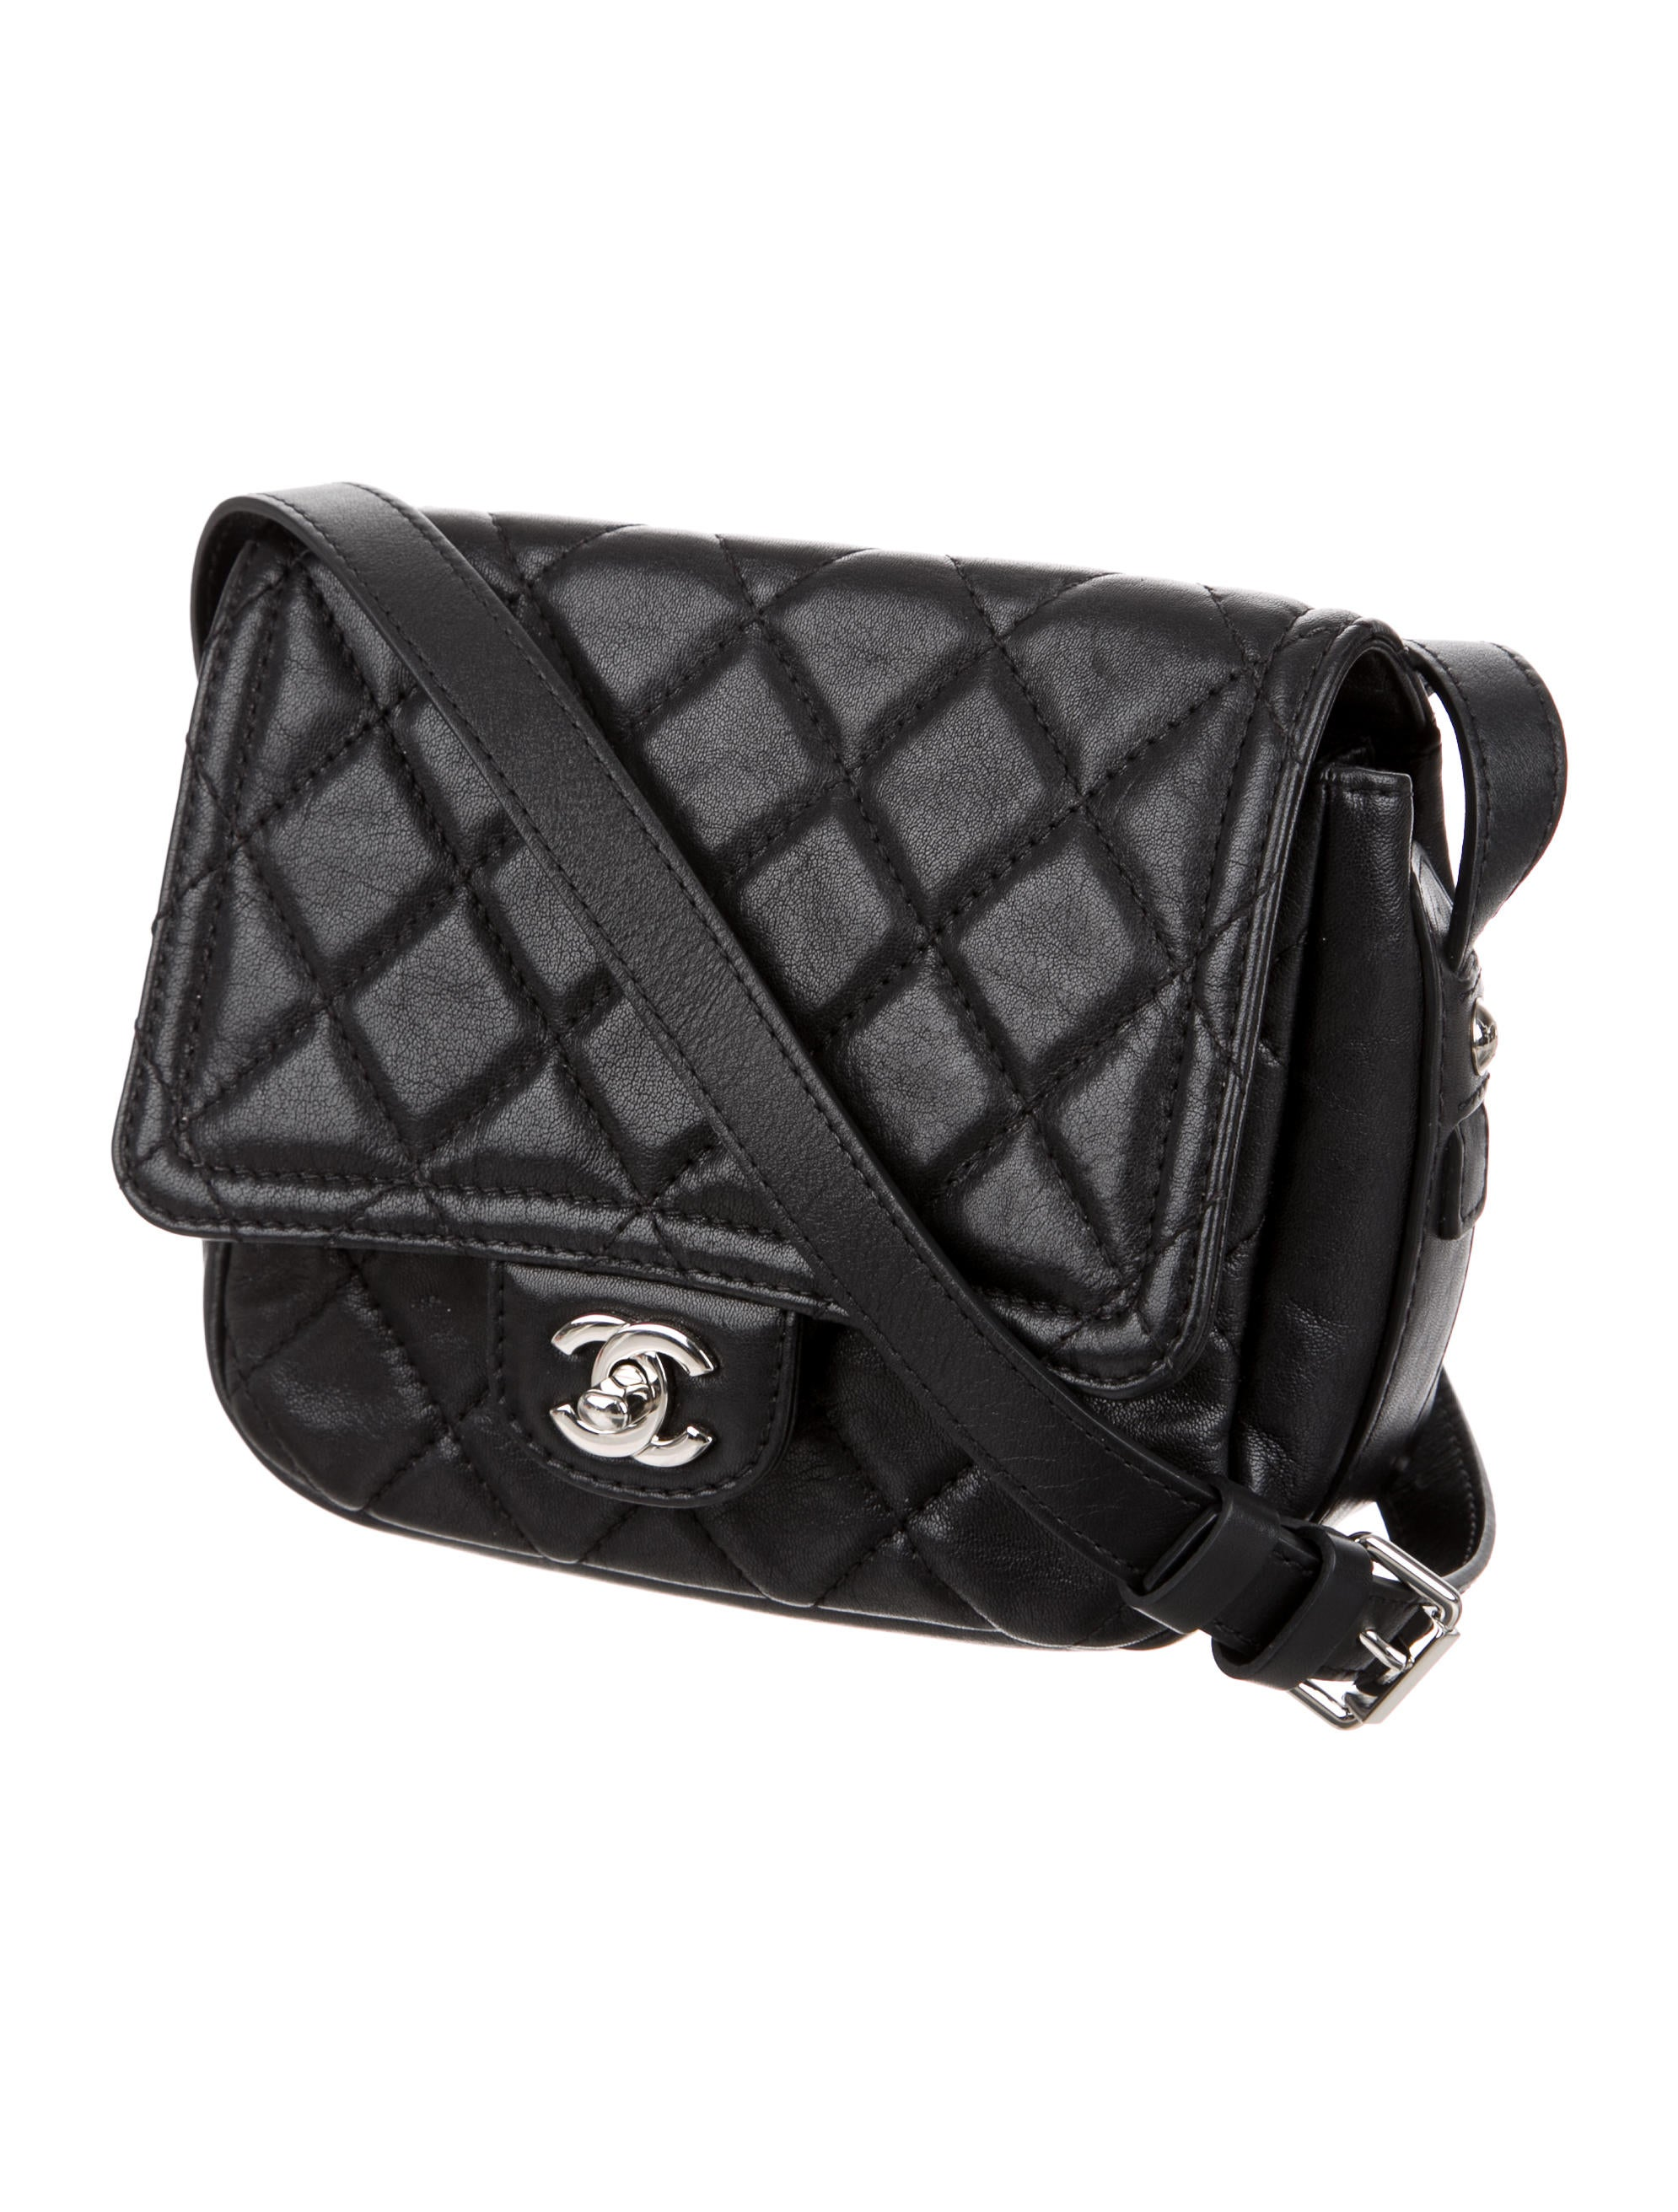 abfad7268d61 Chanel Messenger Bags 2017 | Stanford Center for Opportunity Policy ...